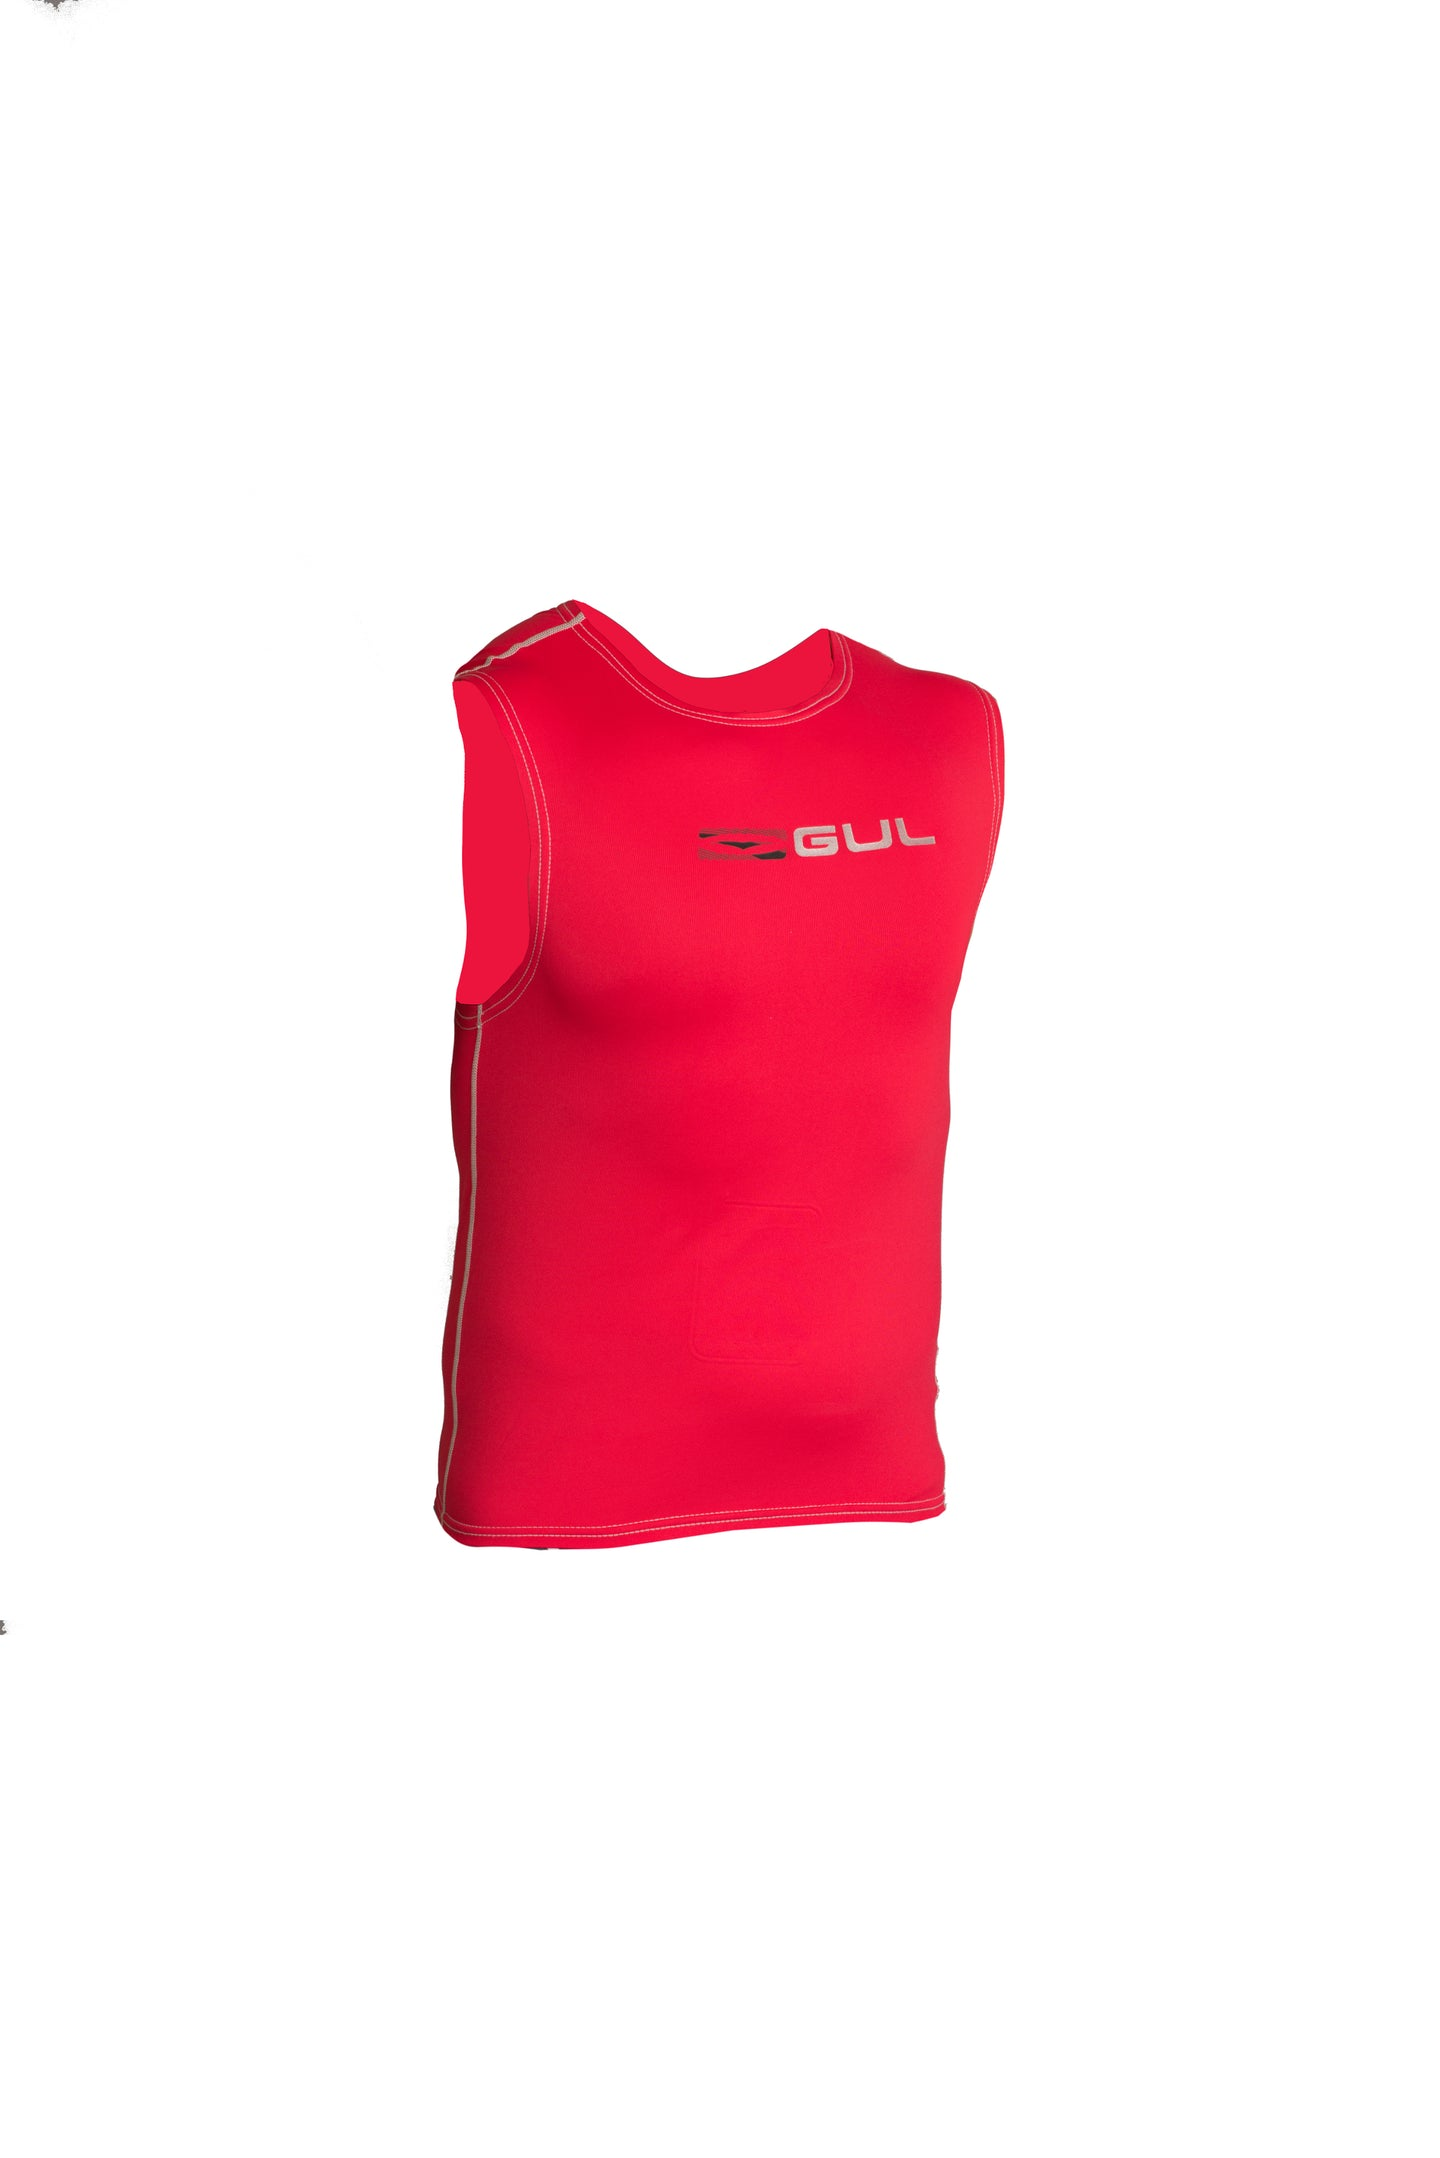 Lycra Race Bib Rouge - Gul - GUL FRANCE